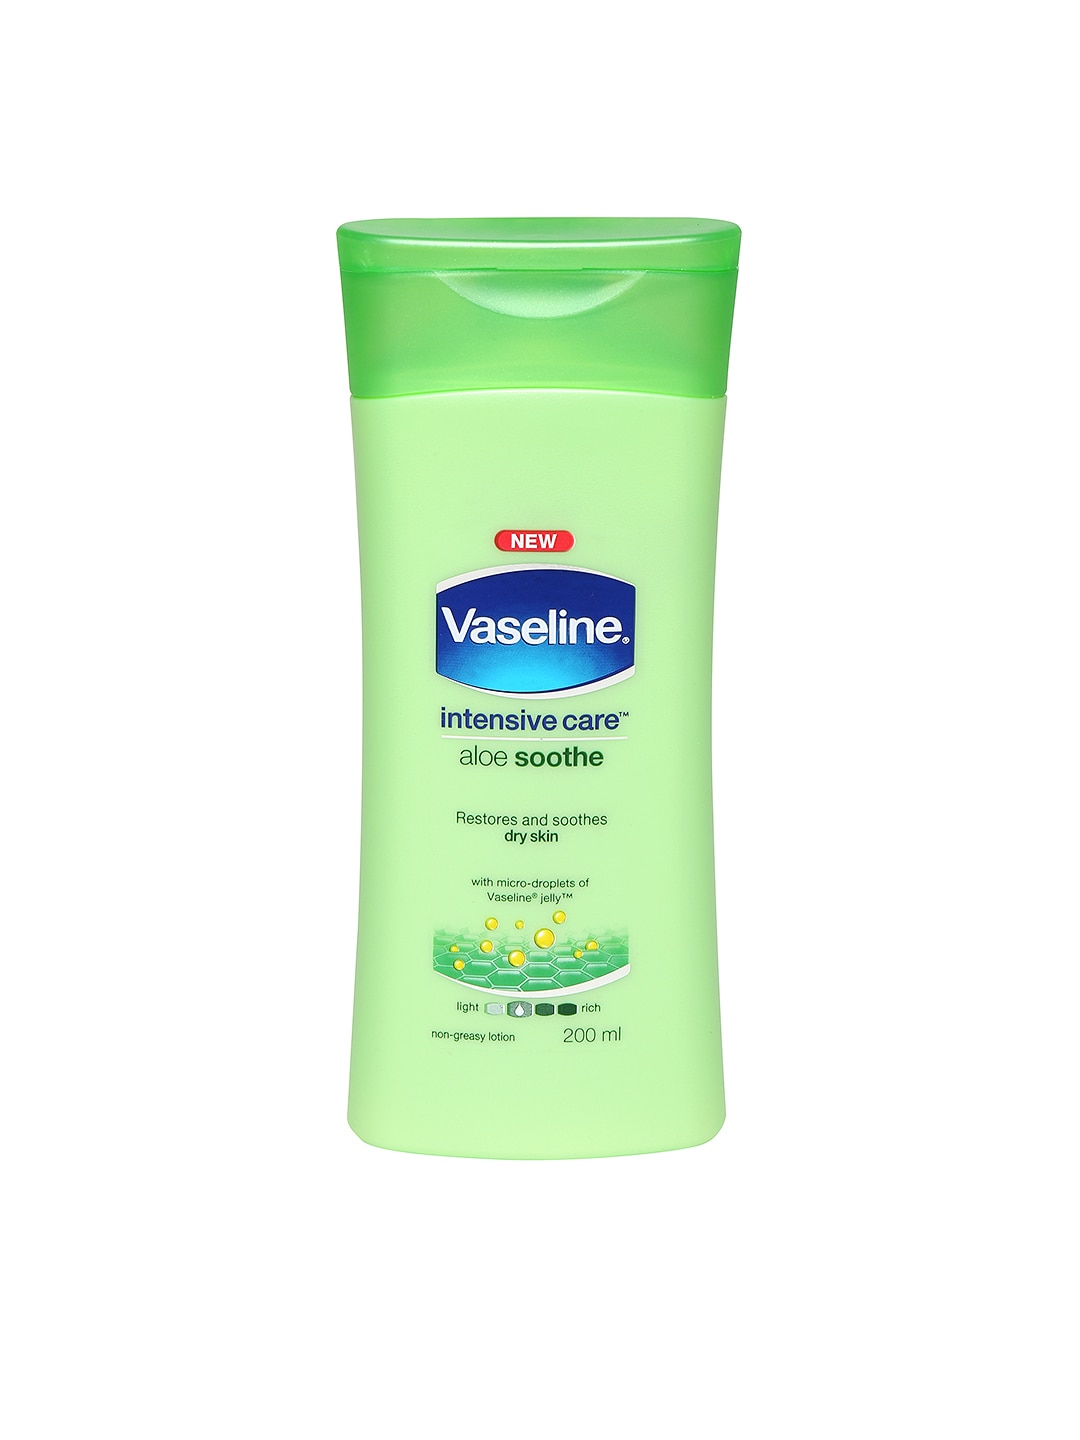 Vaseline Intensive Care Aloe Soothe Body Lotion image